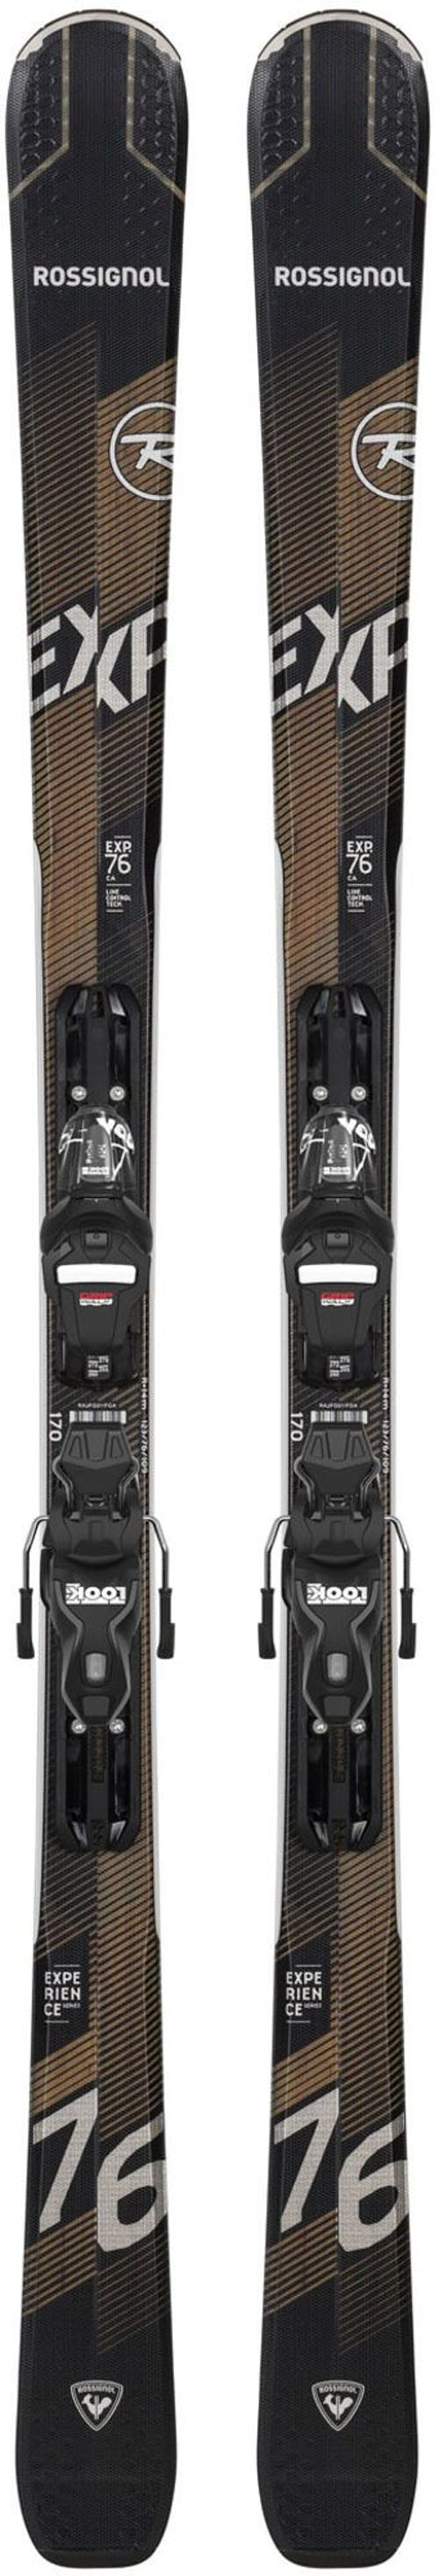 Rossignol Experience 76 CI Skis + Xpress 11 Gw Bindings · 2021